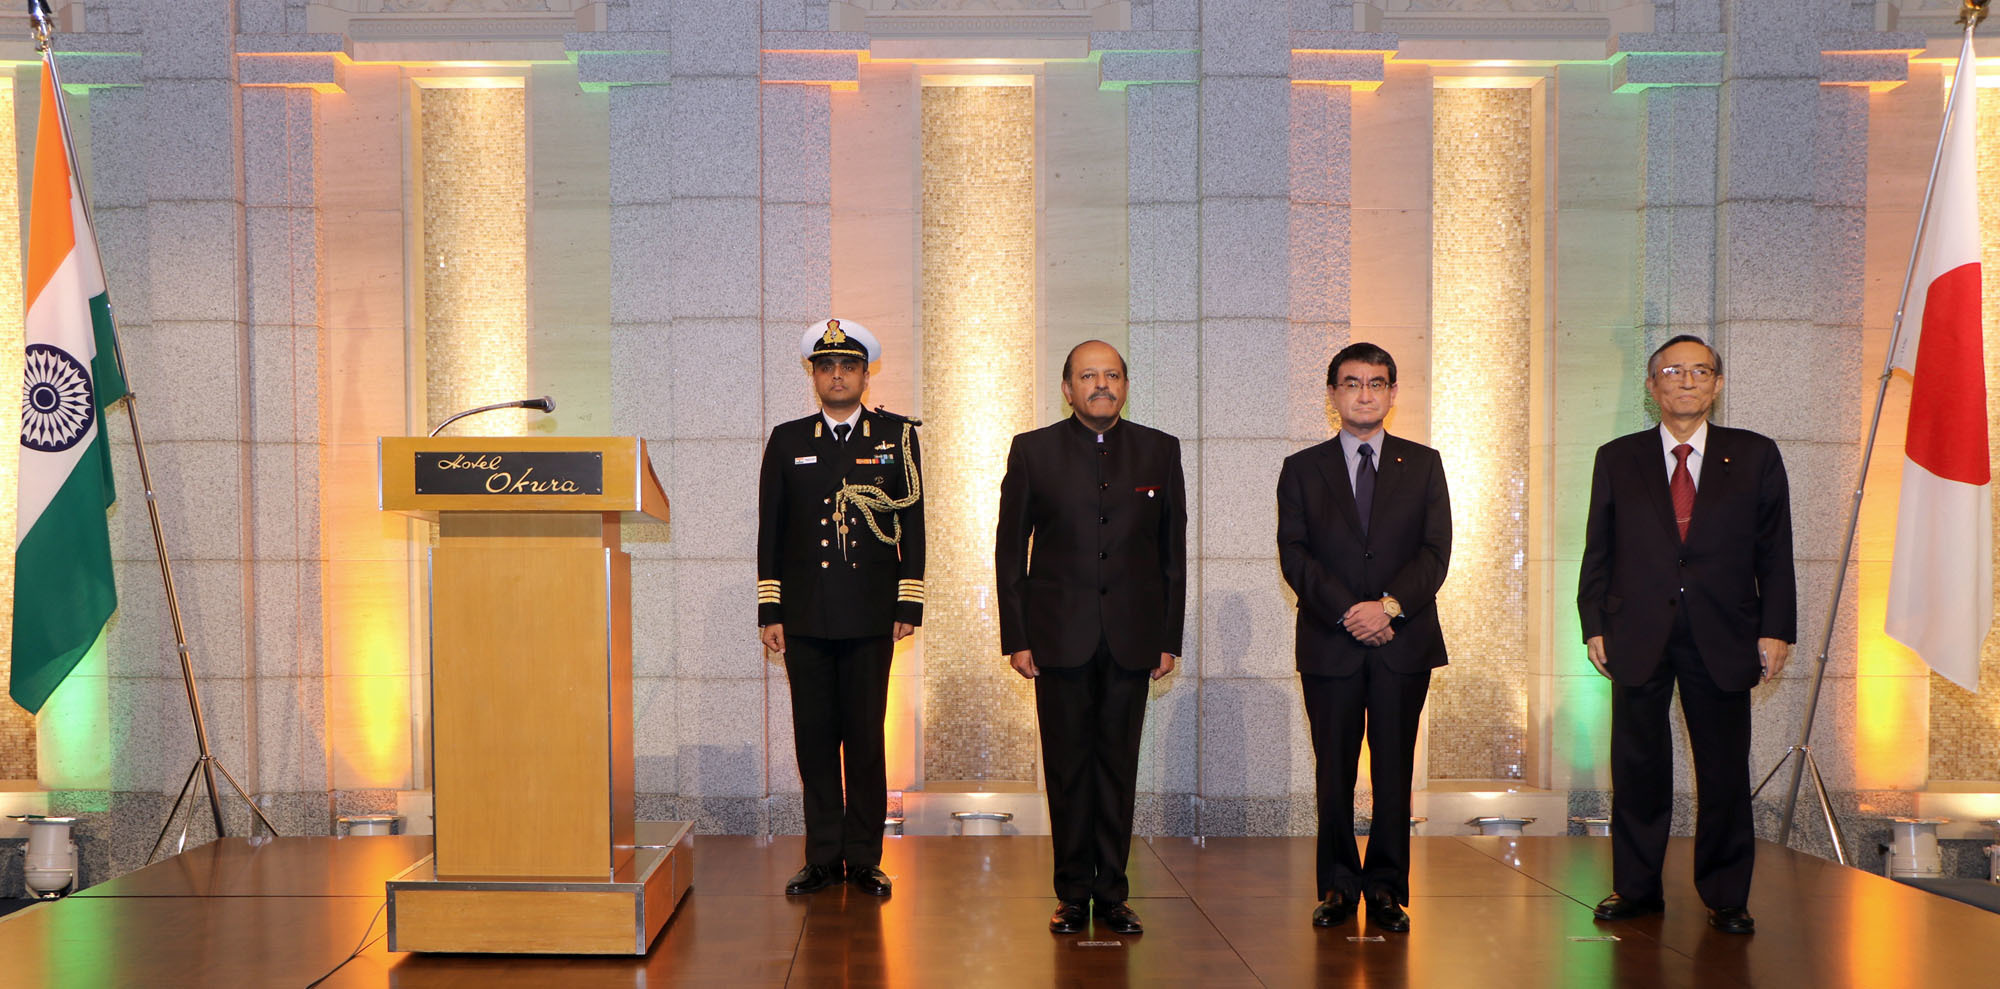 Indian Ambassador Sujan R. Chinoy (second from left) poses with Foreign Minister Taro Kono (center) and Hiroyuki Hosoda, chairman of the Japan-India Parliamentary Friendship League, at a reception at Hotel Okura Tokyo on Jan. 25 to mark the Republic Day of India. |   COURTESY OF THE INDIAN EMBASSY